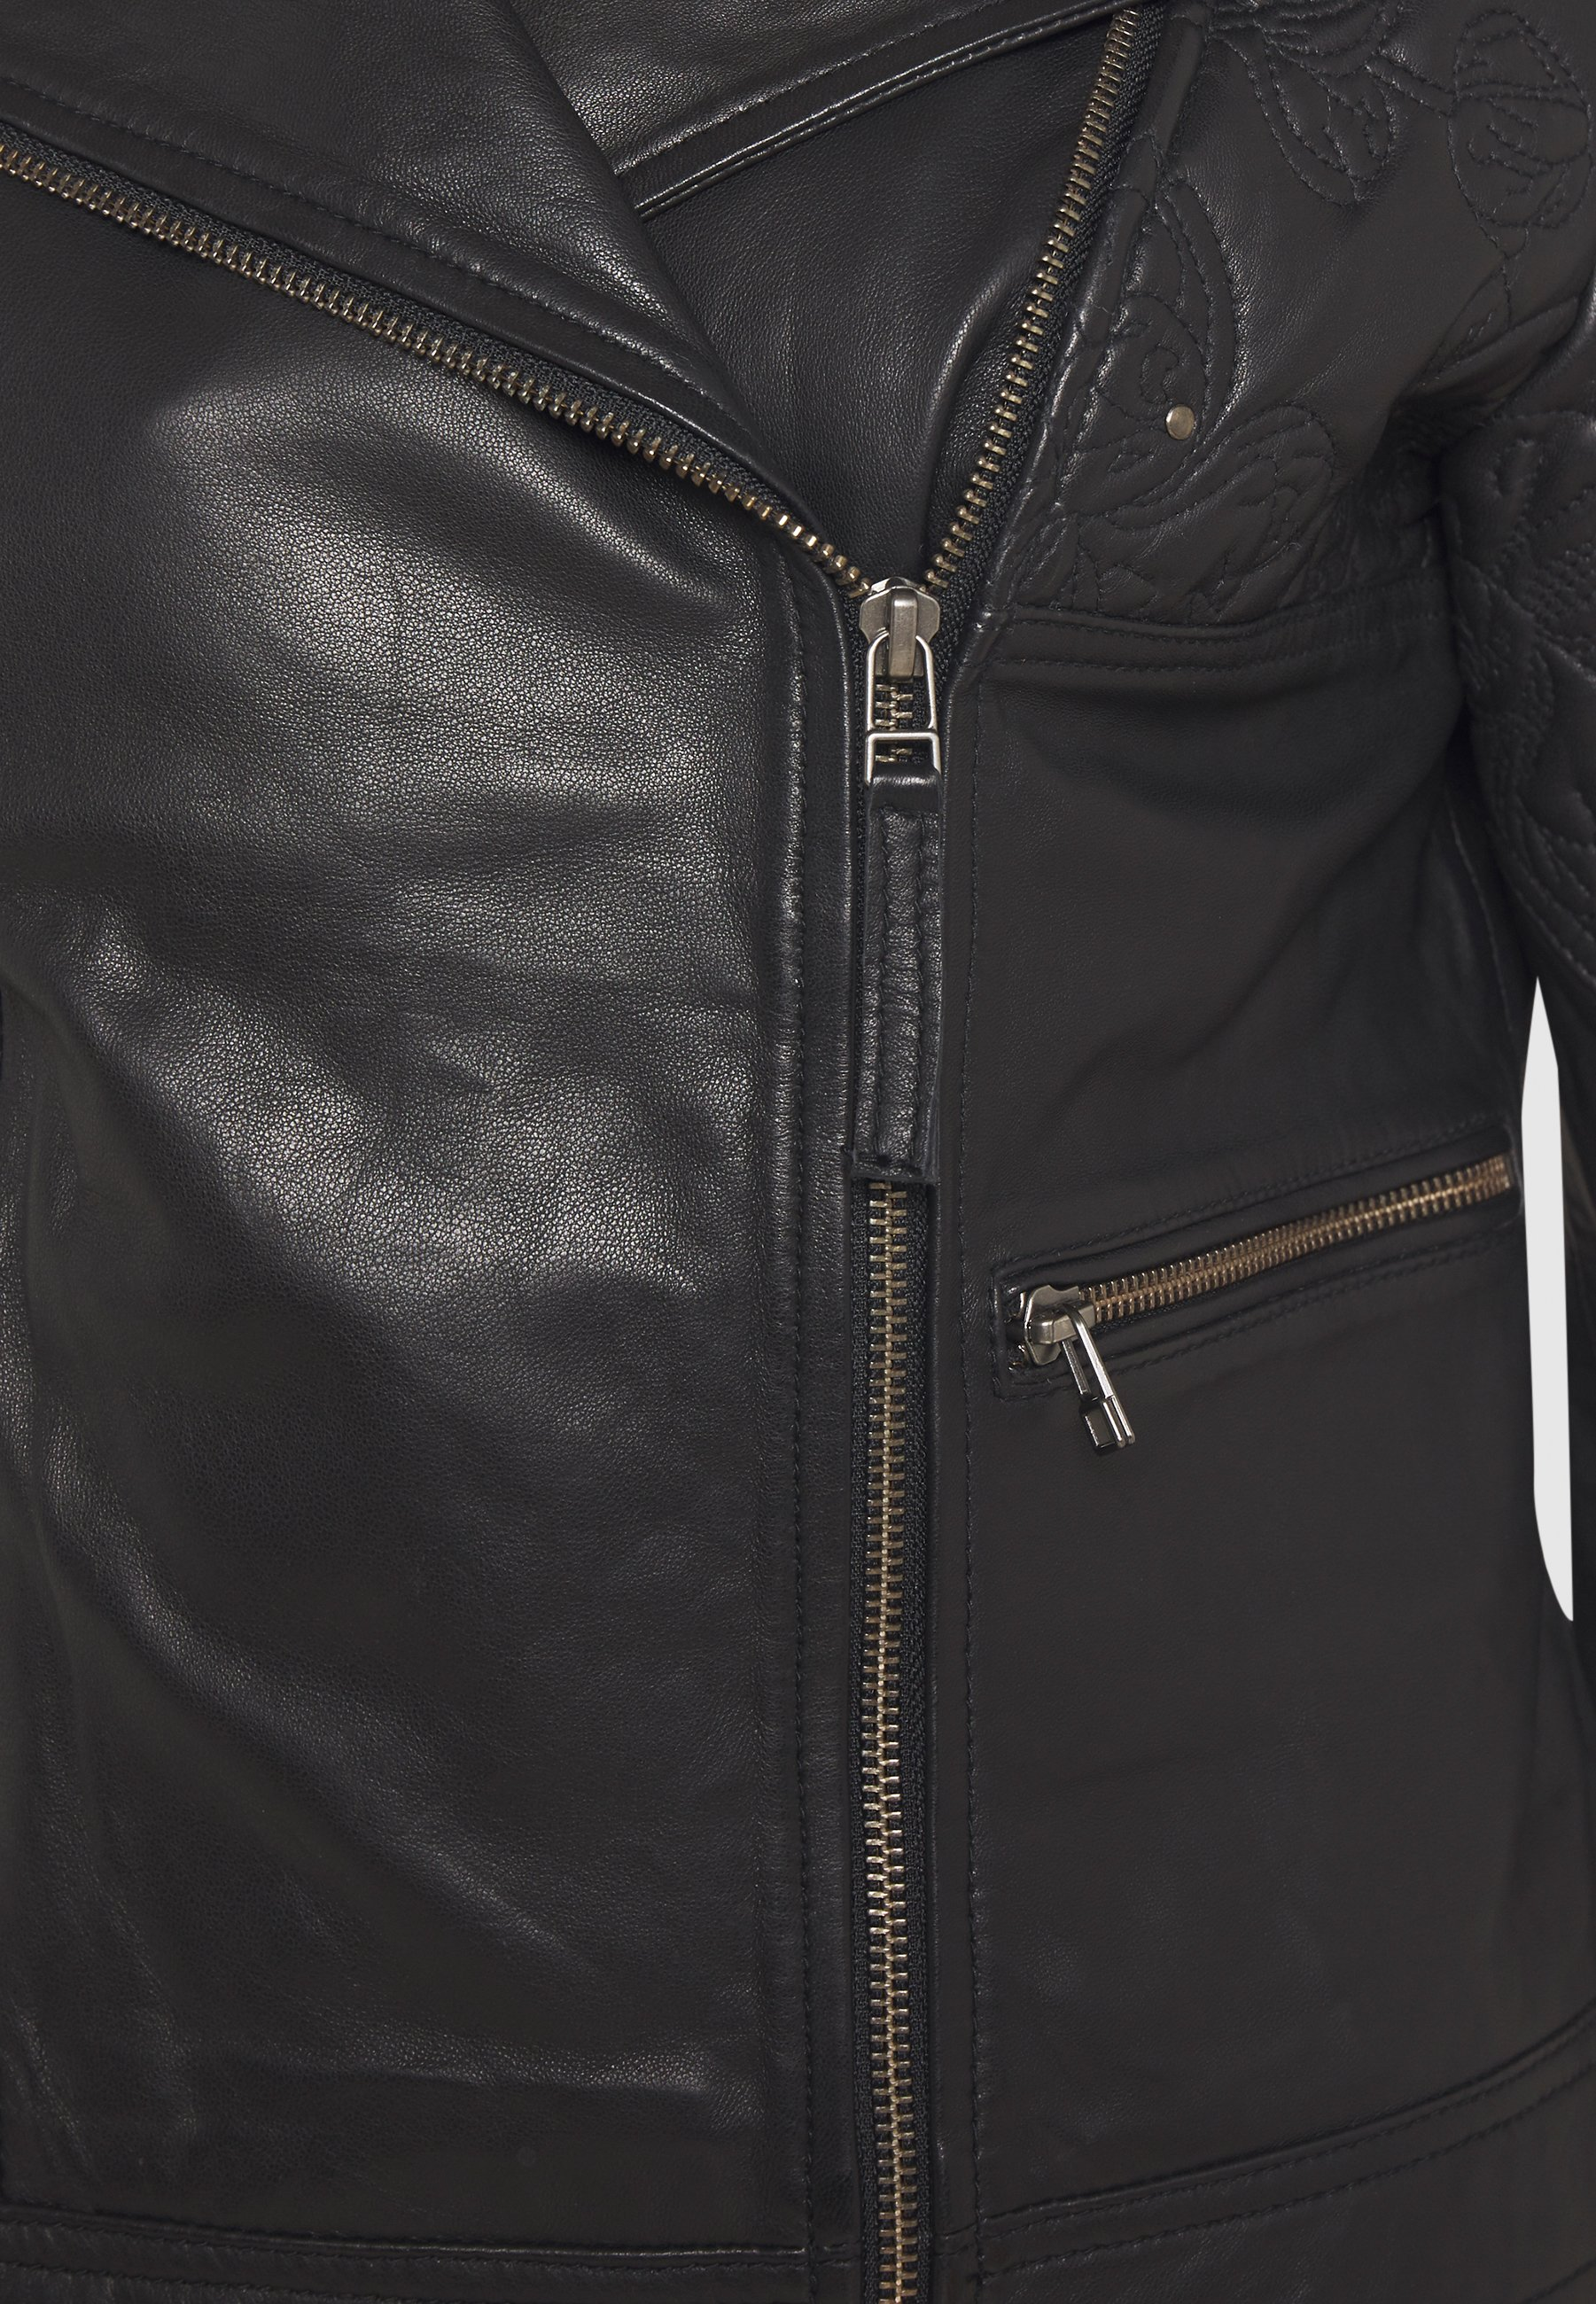 Get The Latest Fashion Women's Clothing Cream CARNIE JACKET Faux leather jacket pitch black yb2ZBDfiD